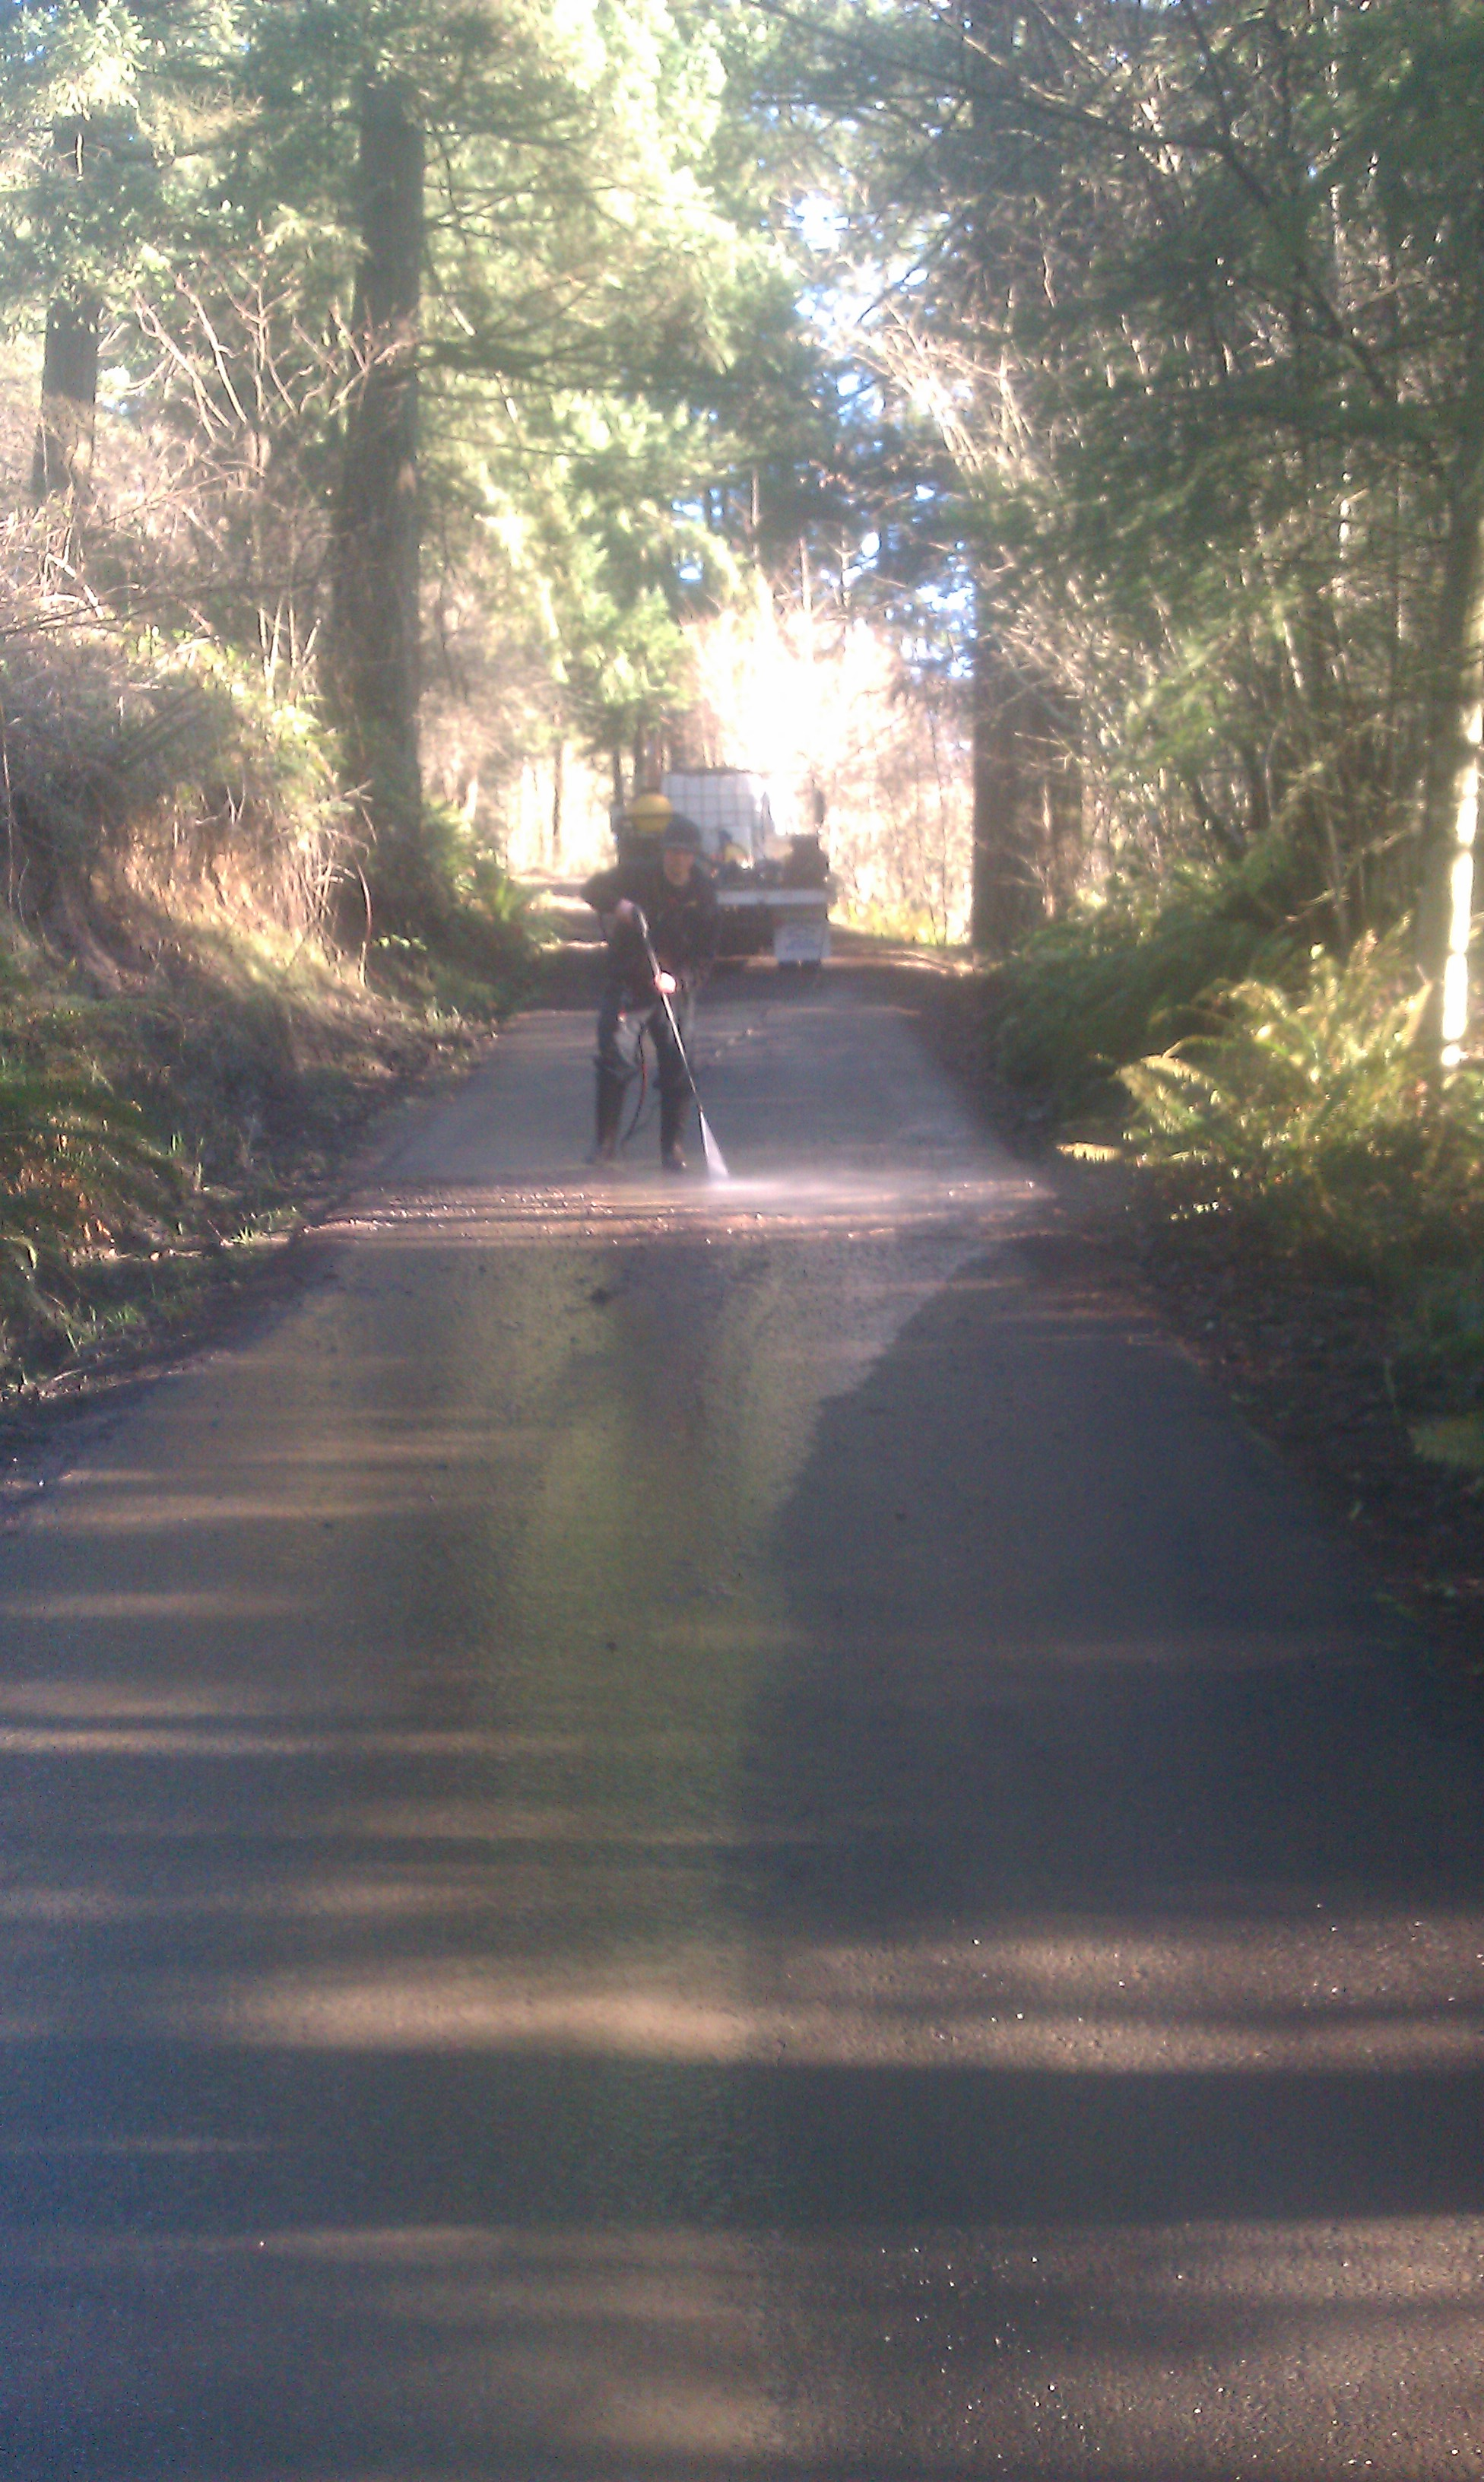 Cleaning roadway - see the difference